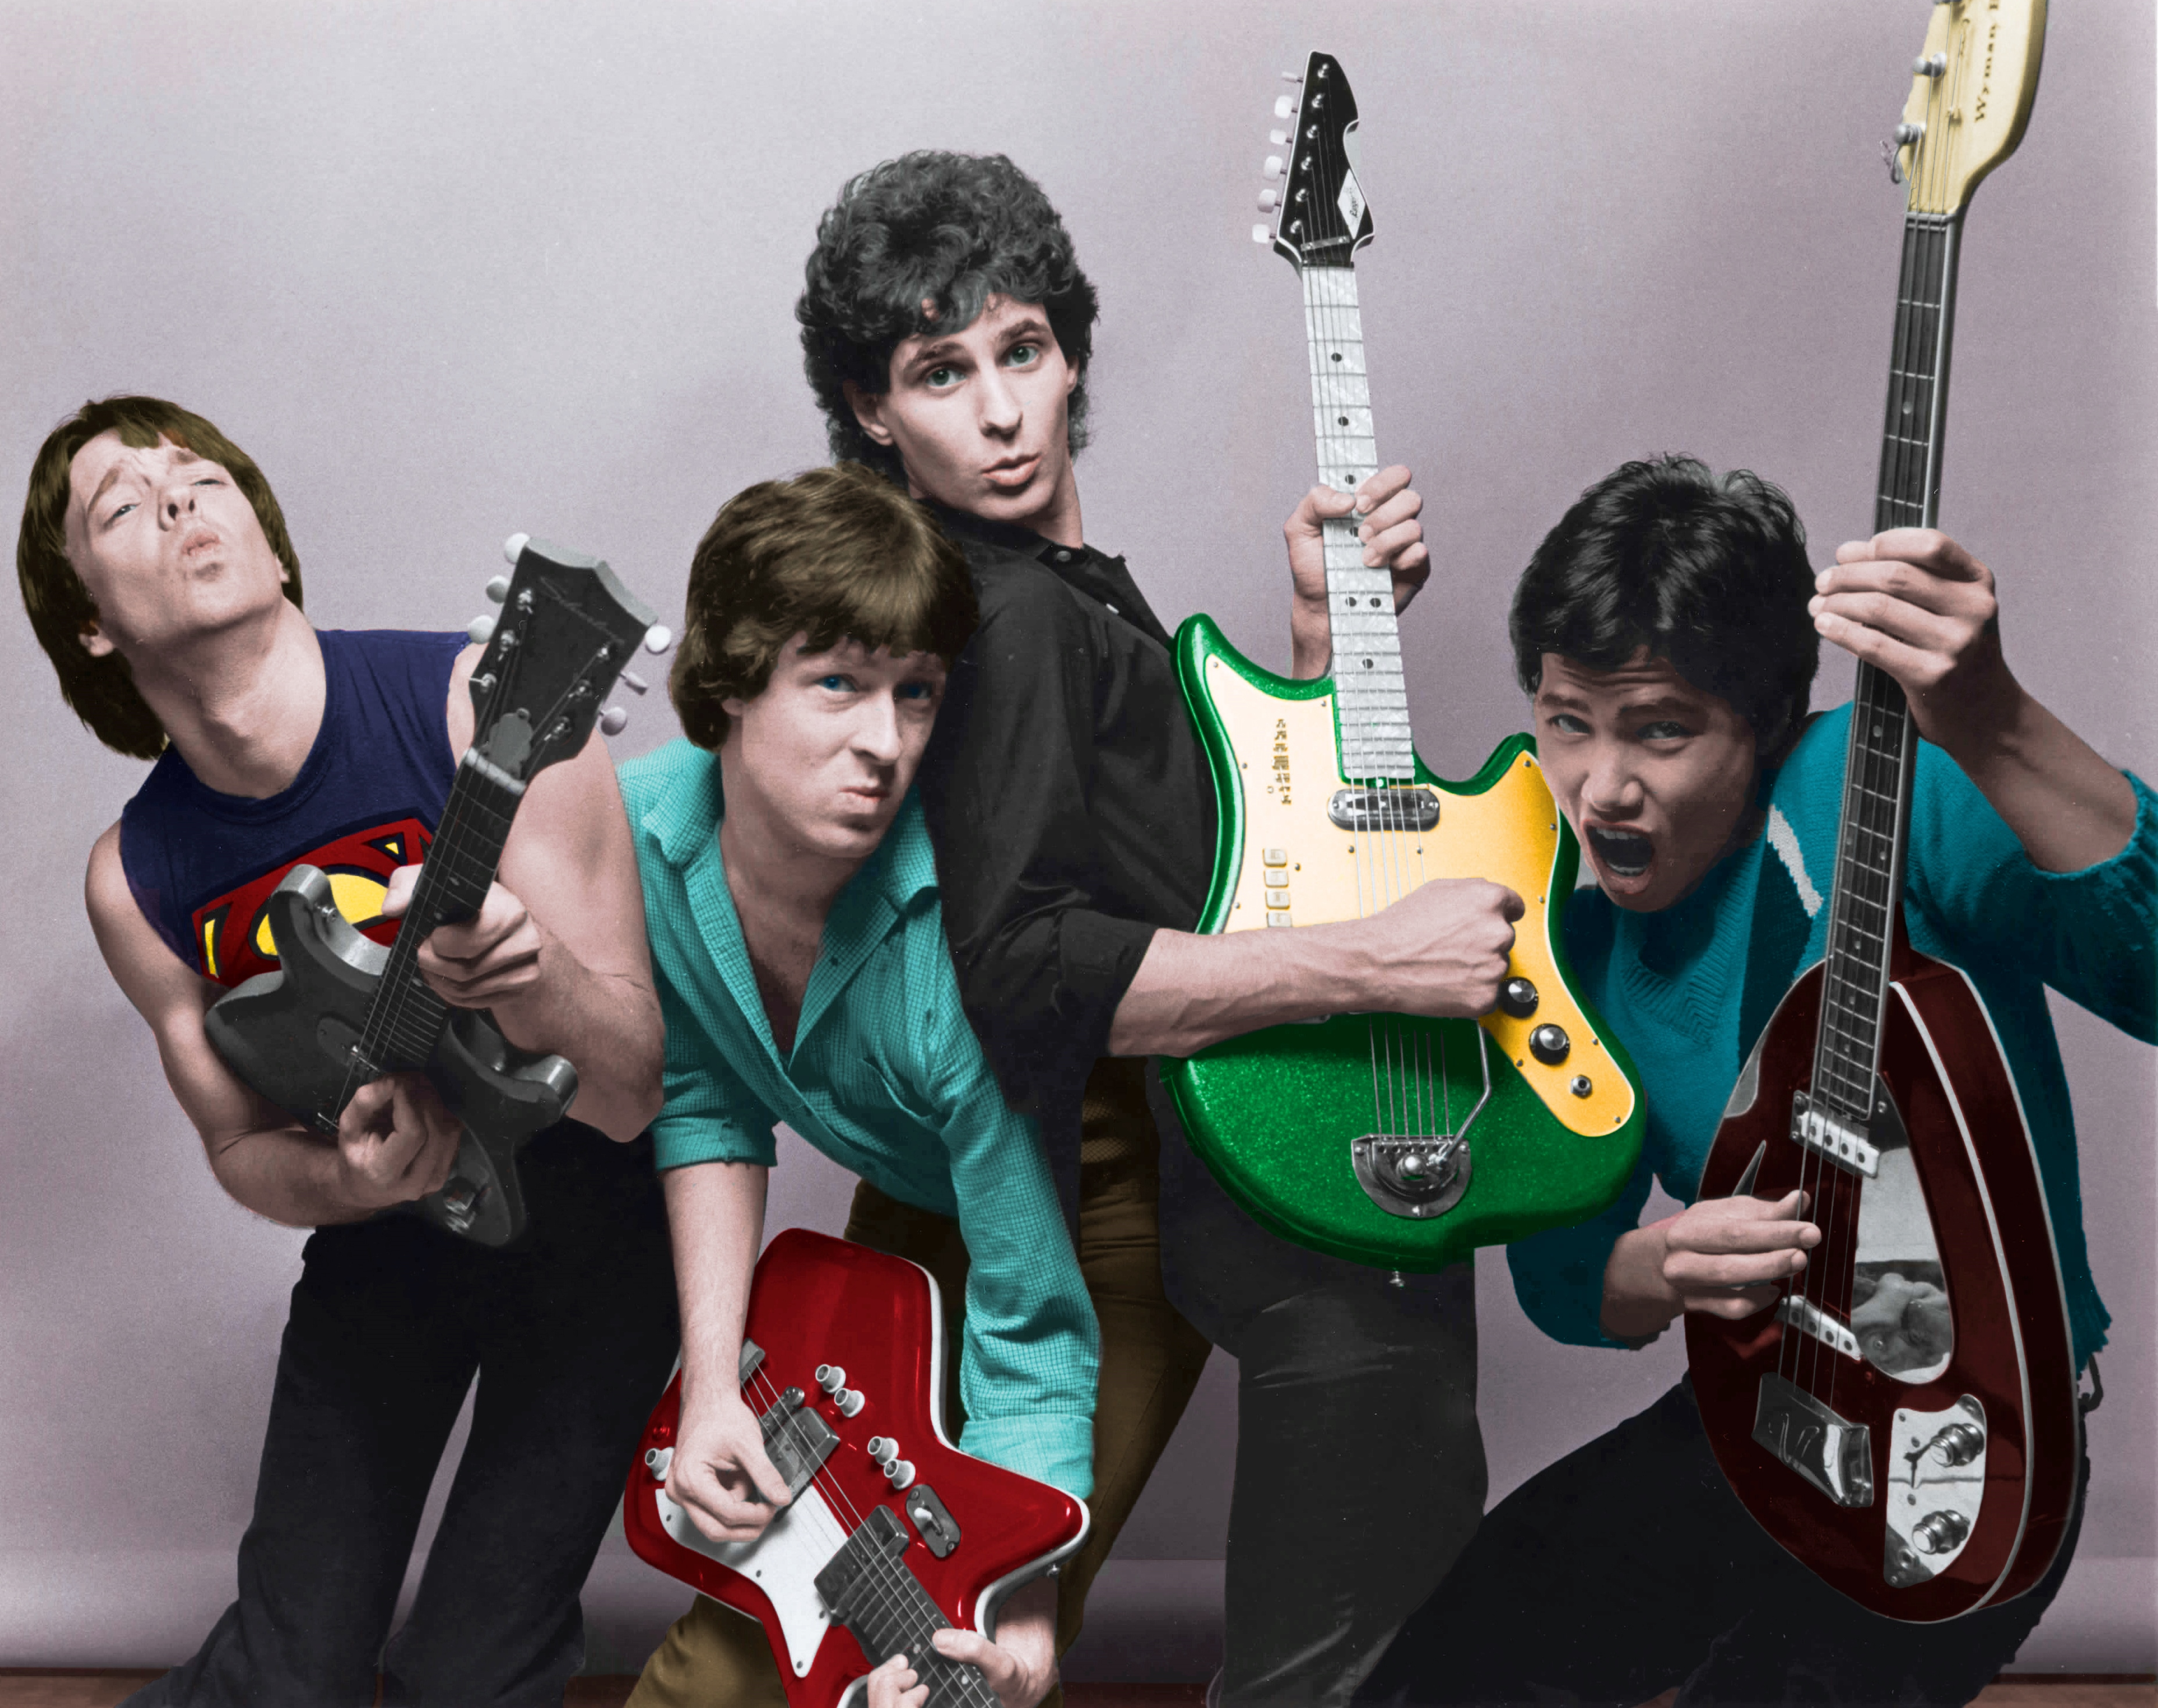 LA LIVE MUSIC NEWS: The Rubinoos, Power Pop Legends, Return to LA For First Show in 16 Years on Feb. 19, 2017 at Viper Room